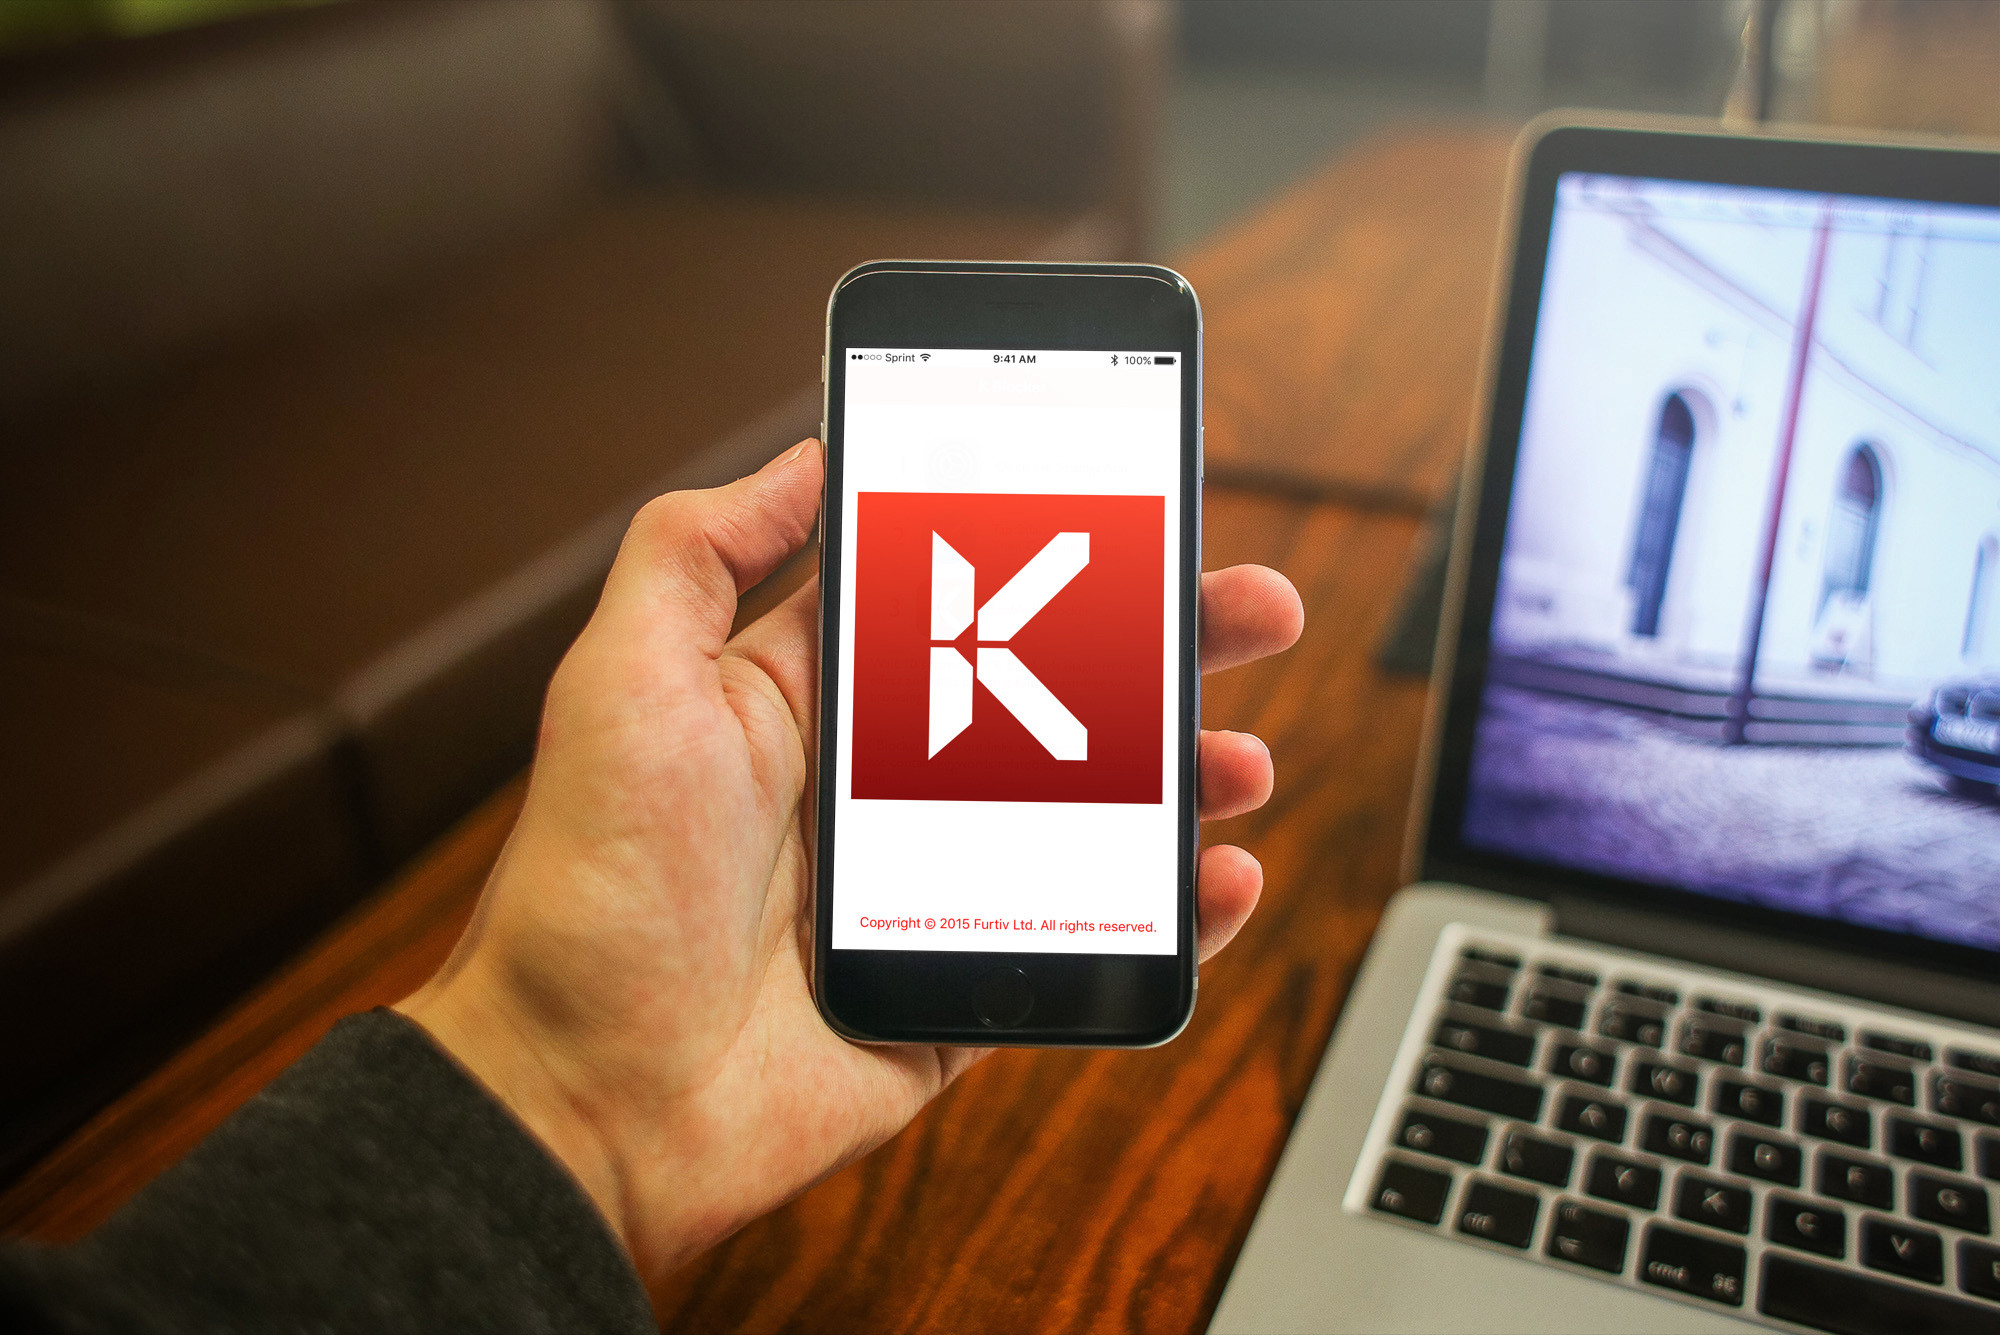 Tired of the Kardashians? Get K Blocker and eliminate them